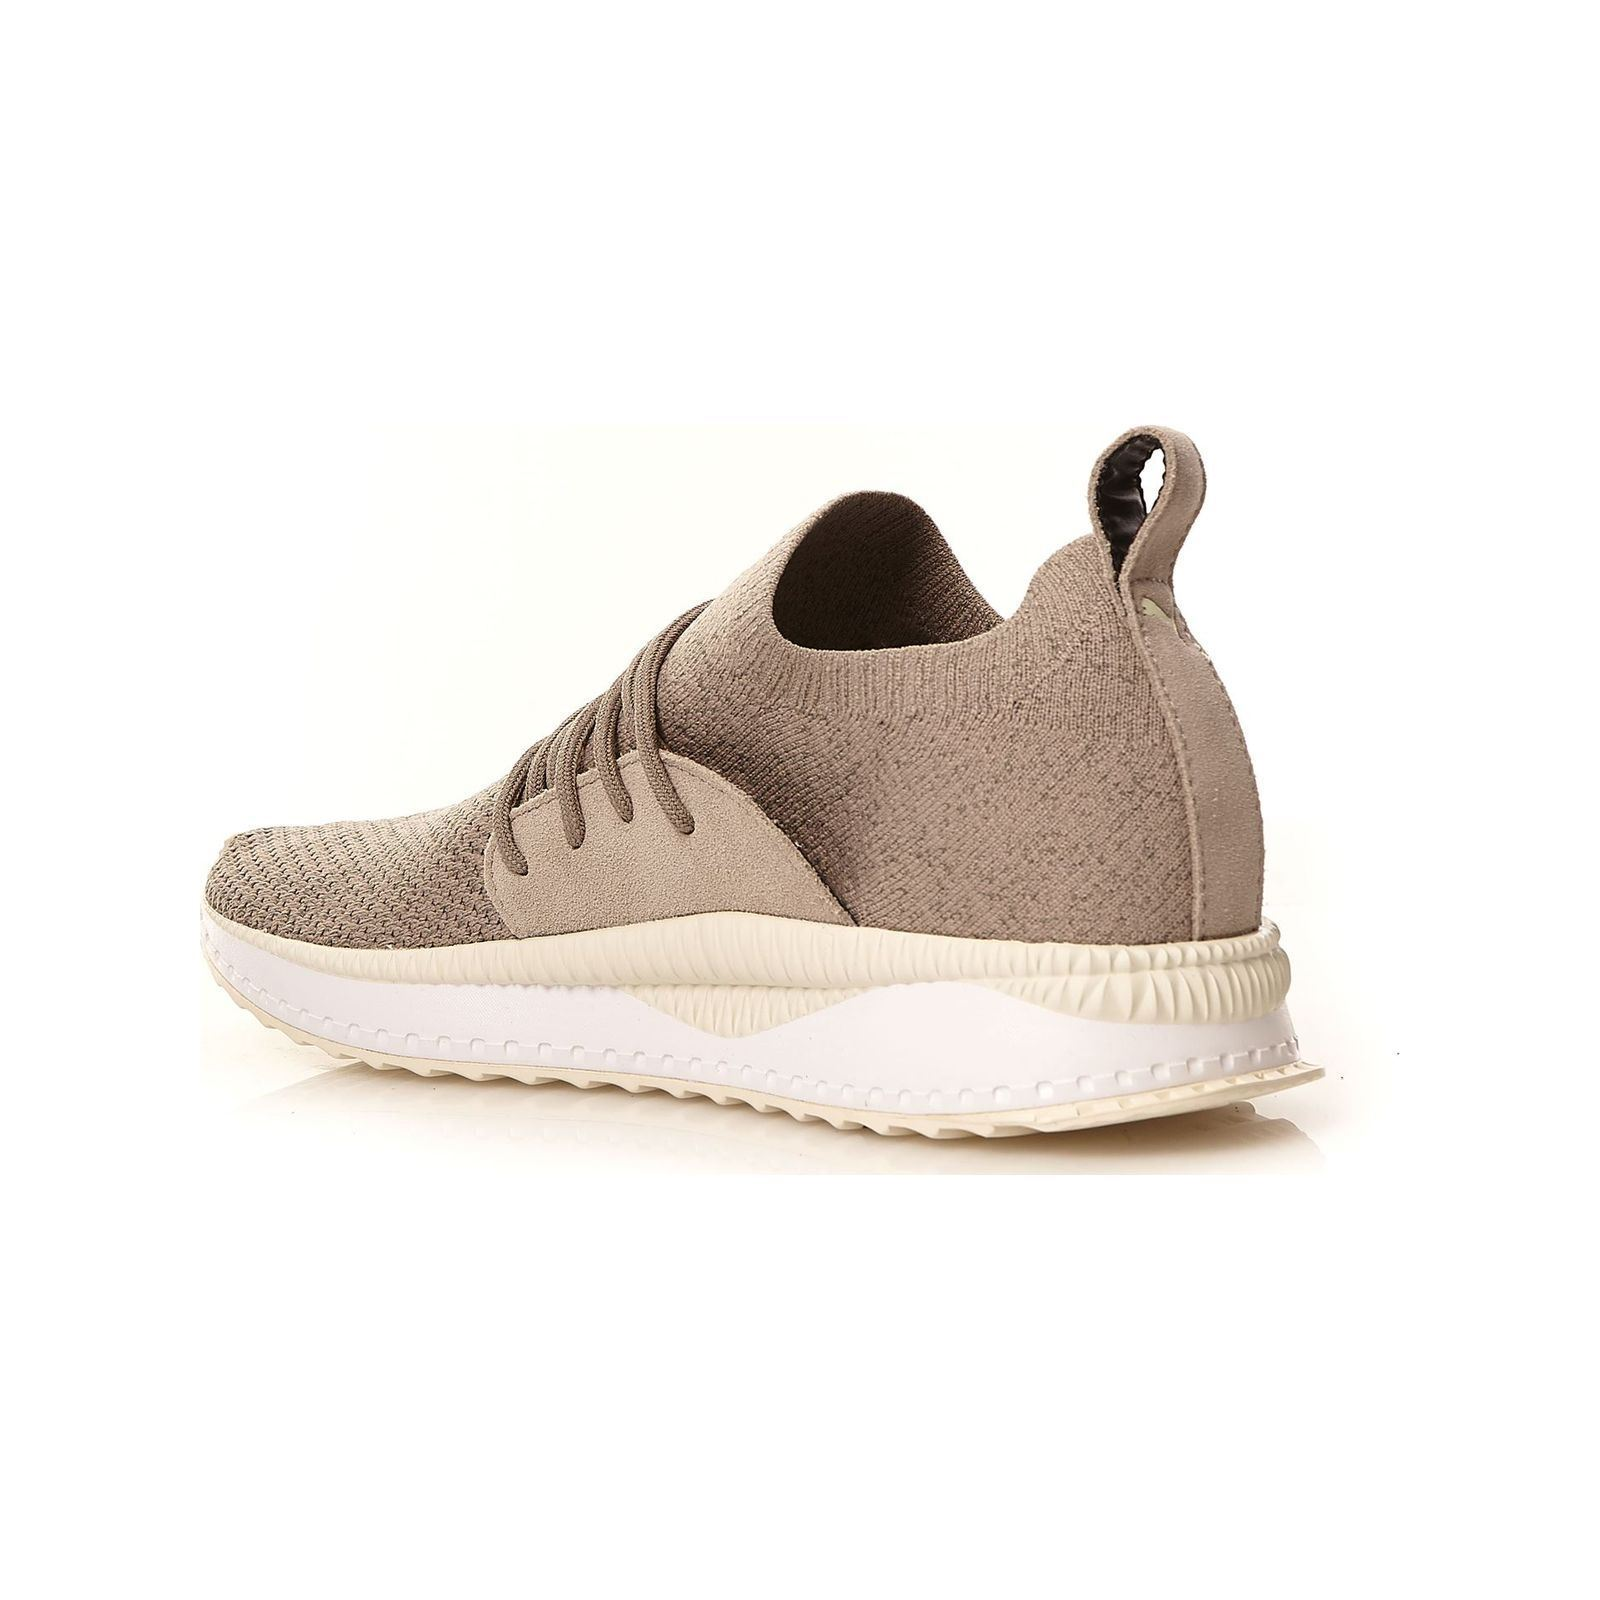 Puma Tsugi apex - Baskets Running - gris